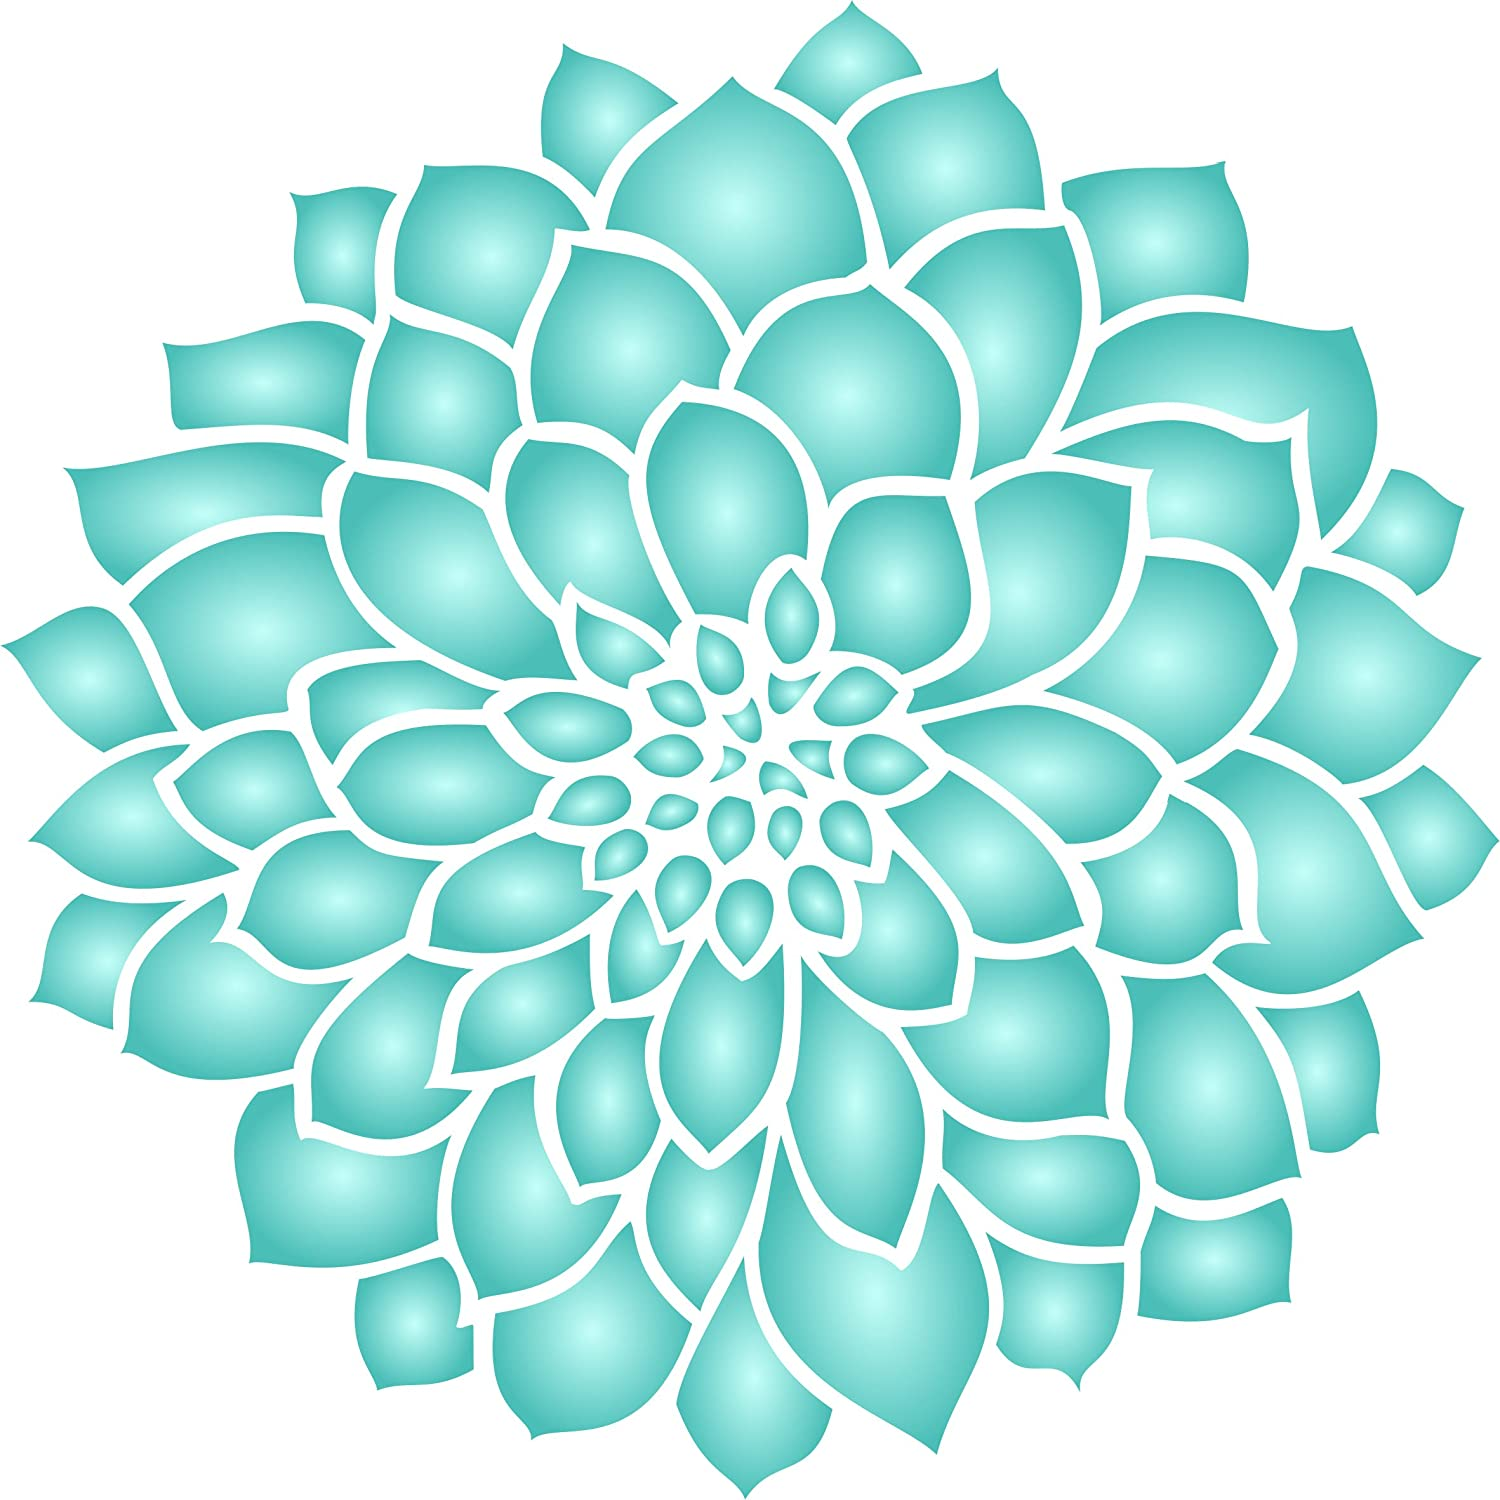 Amazon dahlia or zinnia stencil size 5w x 5h reusable amazon dahlia or zinnia stencil size 5w x 5h reusable wall stencils for painting best quality zinnia grande flower ideas use on walls amipublicfo Images